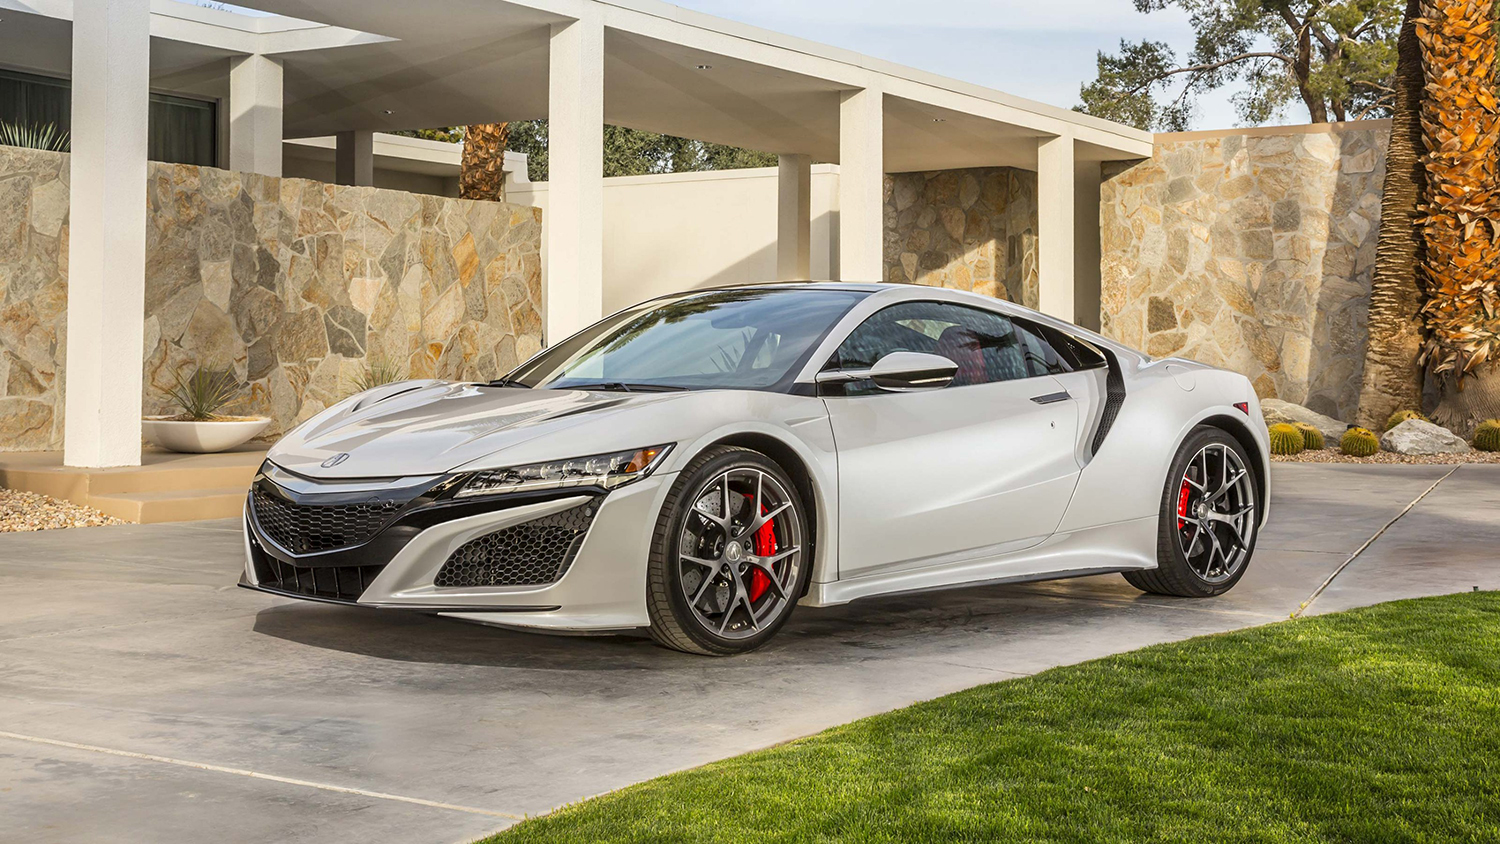 Banish 2017 acura sports car conversation